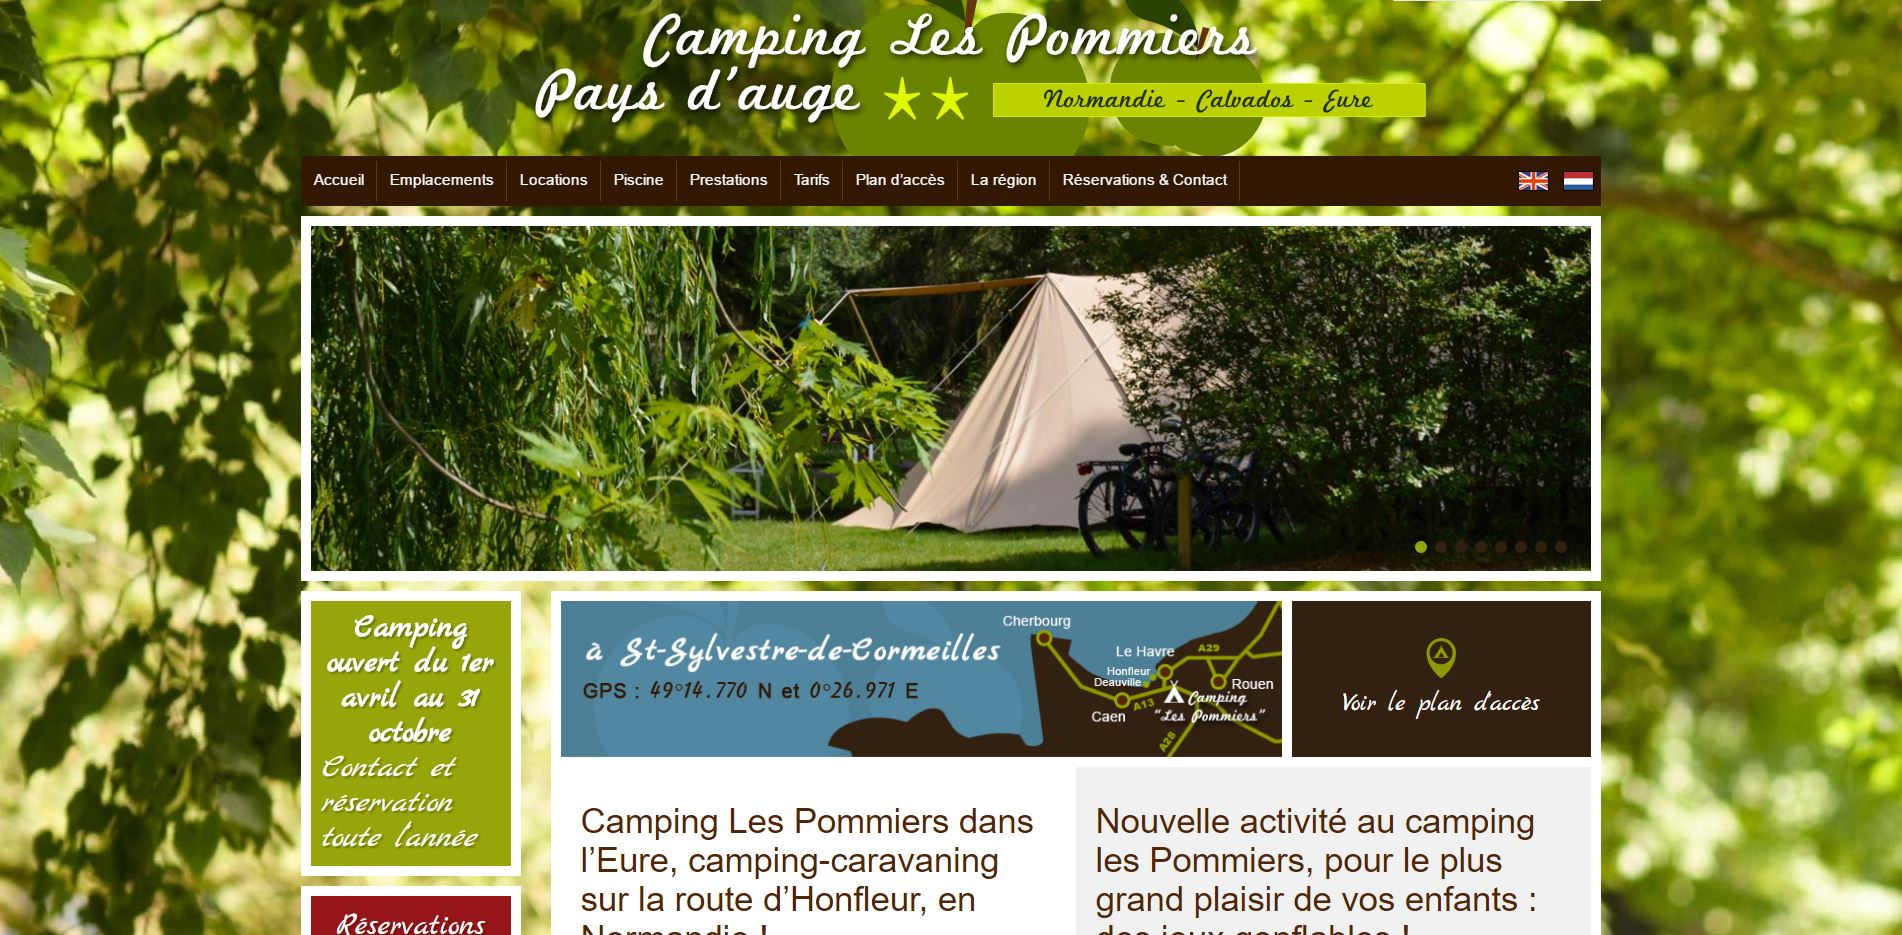 camping pommiers pays dauge